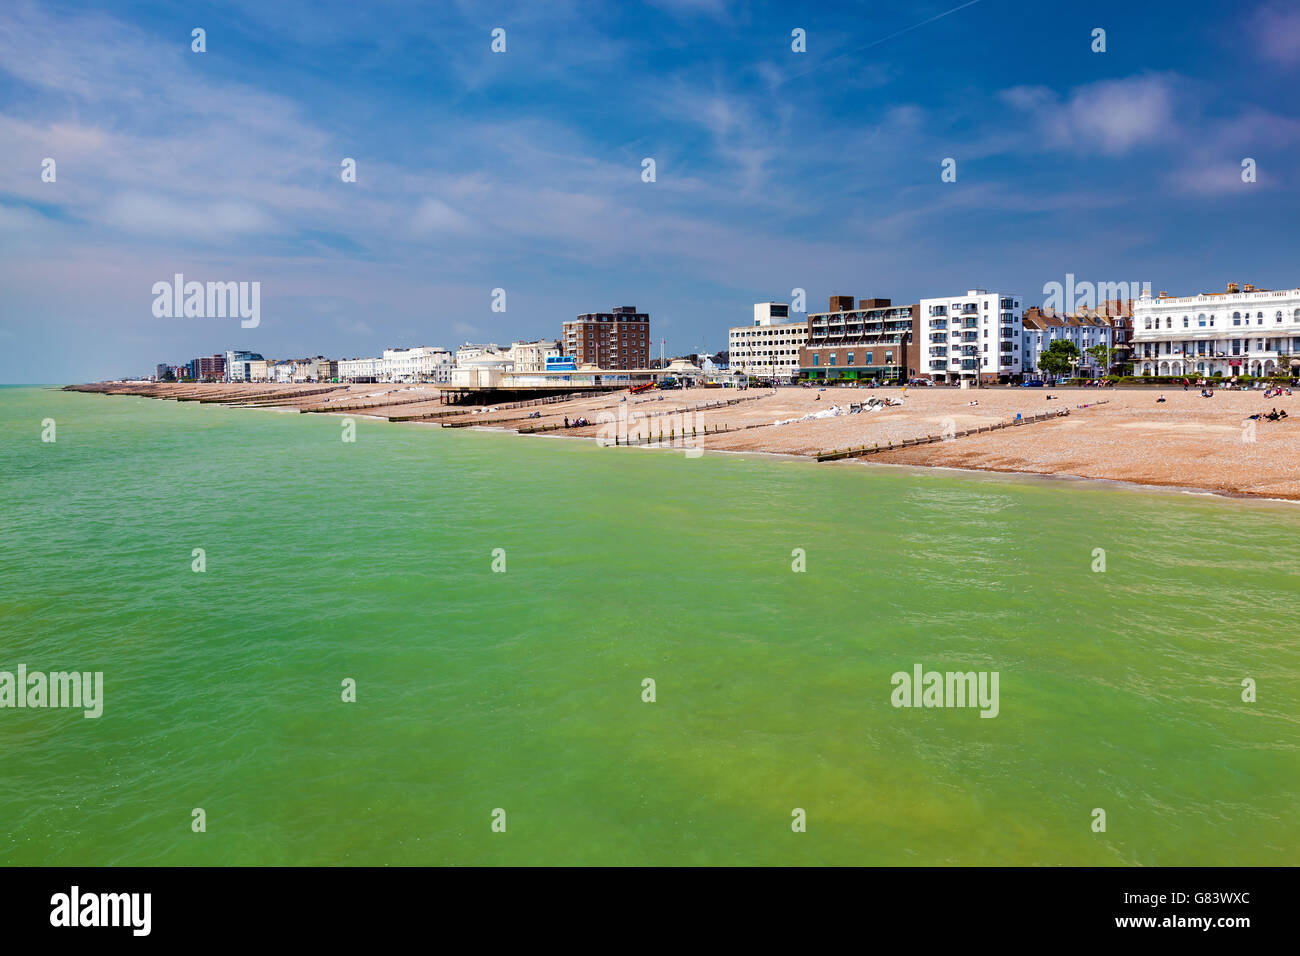 The beach as seen from the Pier at Worthing West Sussex England UK Europe - Stock Image